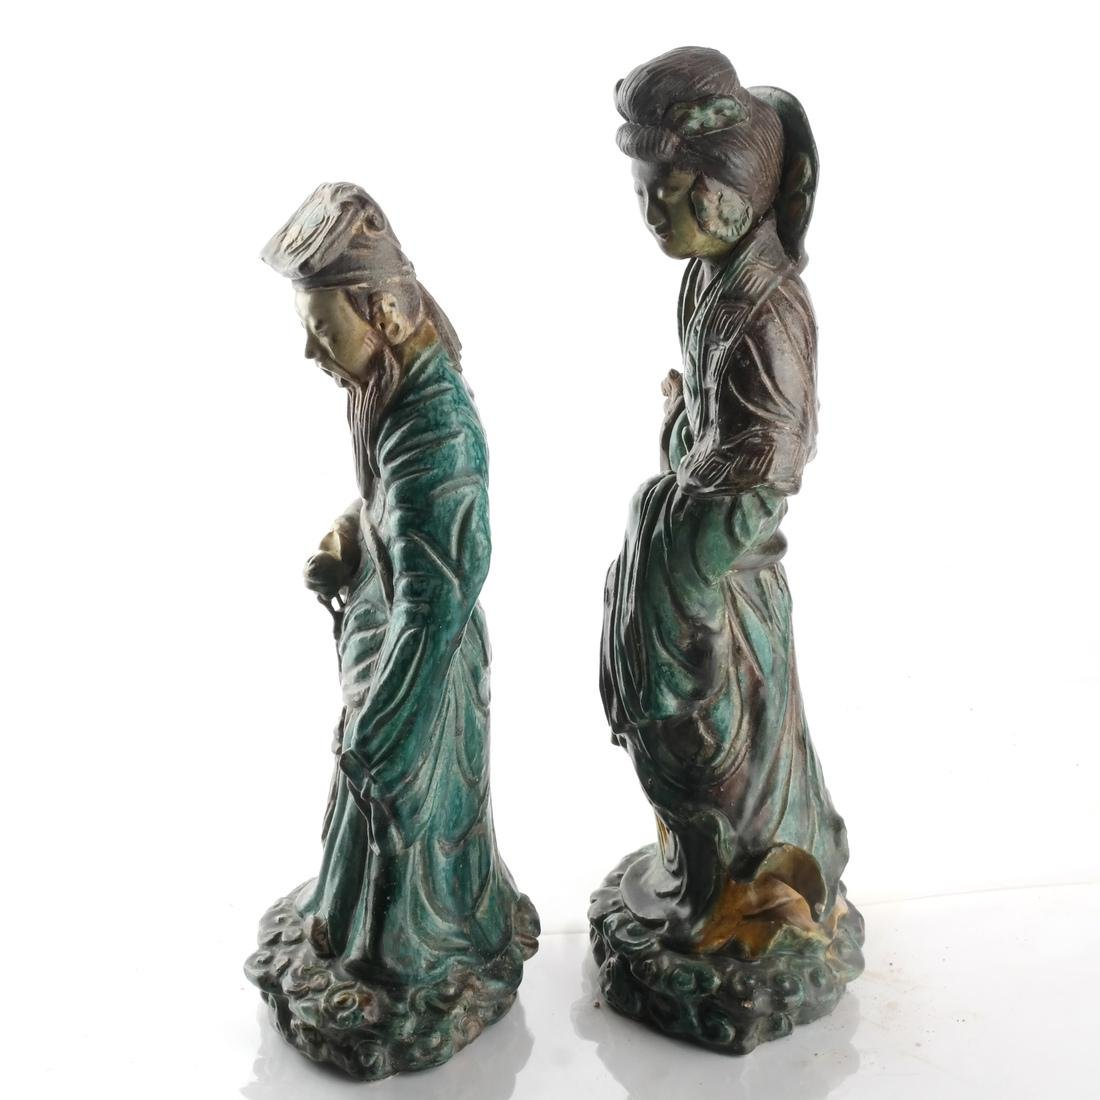 Two Chinese Qing Dynasty Figures - 2